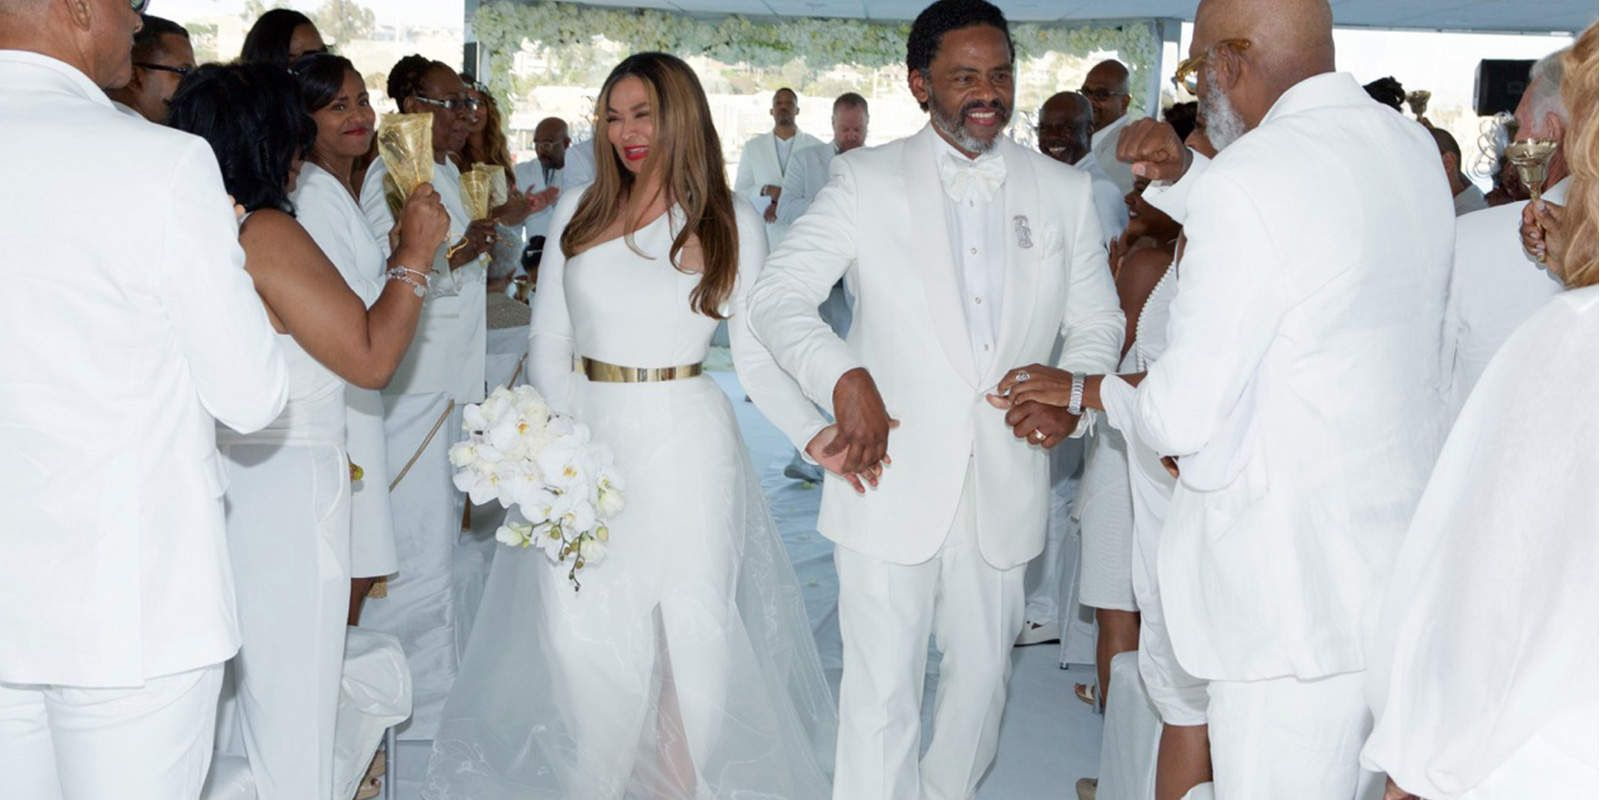 beyonce wedding day pictures - http://hdwallpaper.info/beyonce ...